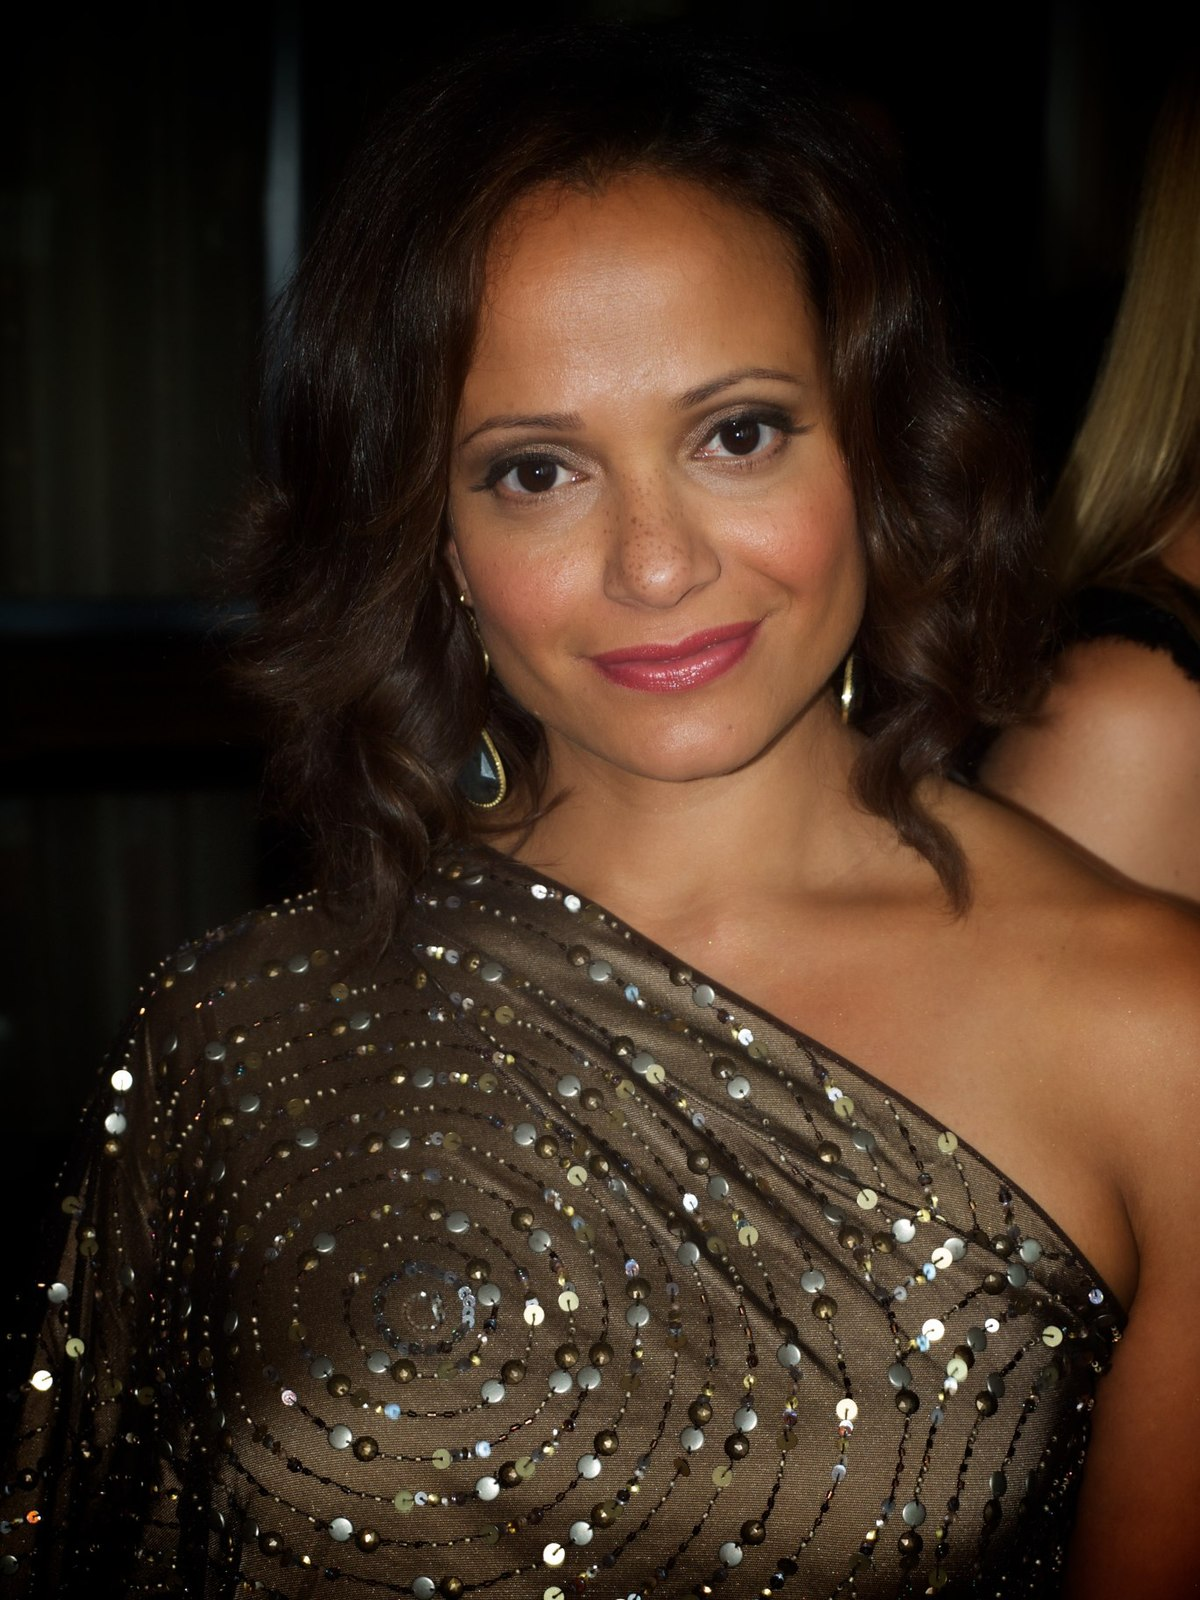 Judy Reyes nude (26 foto and video), Sexy, Cleavage, Boobs, legs 2020